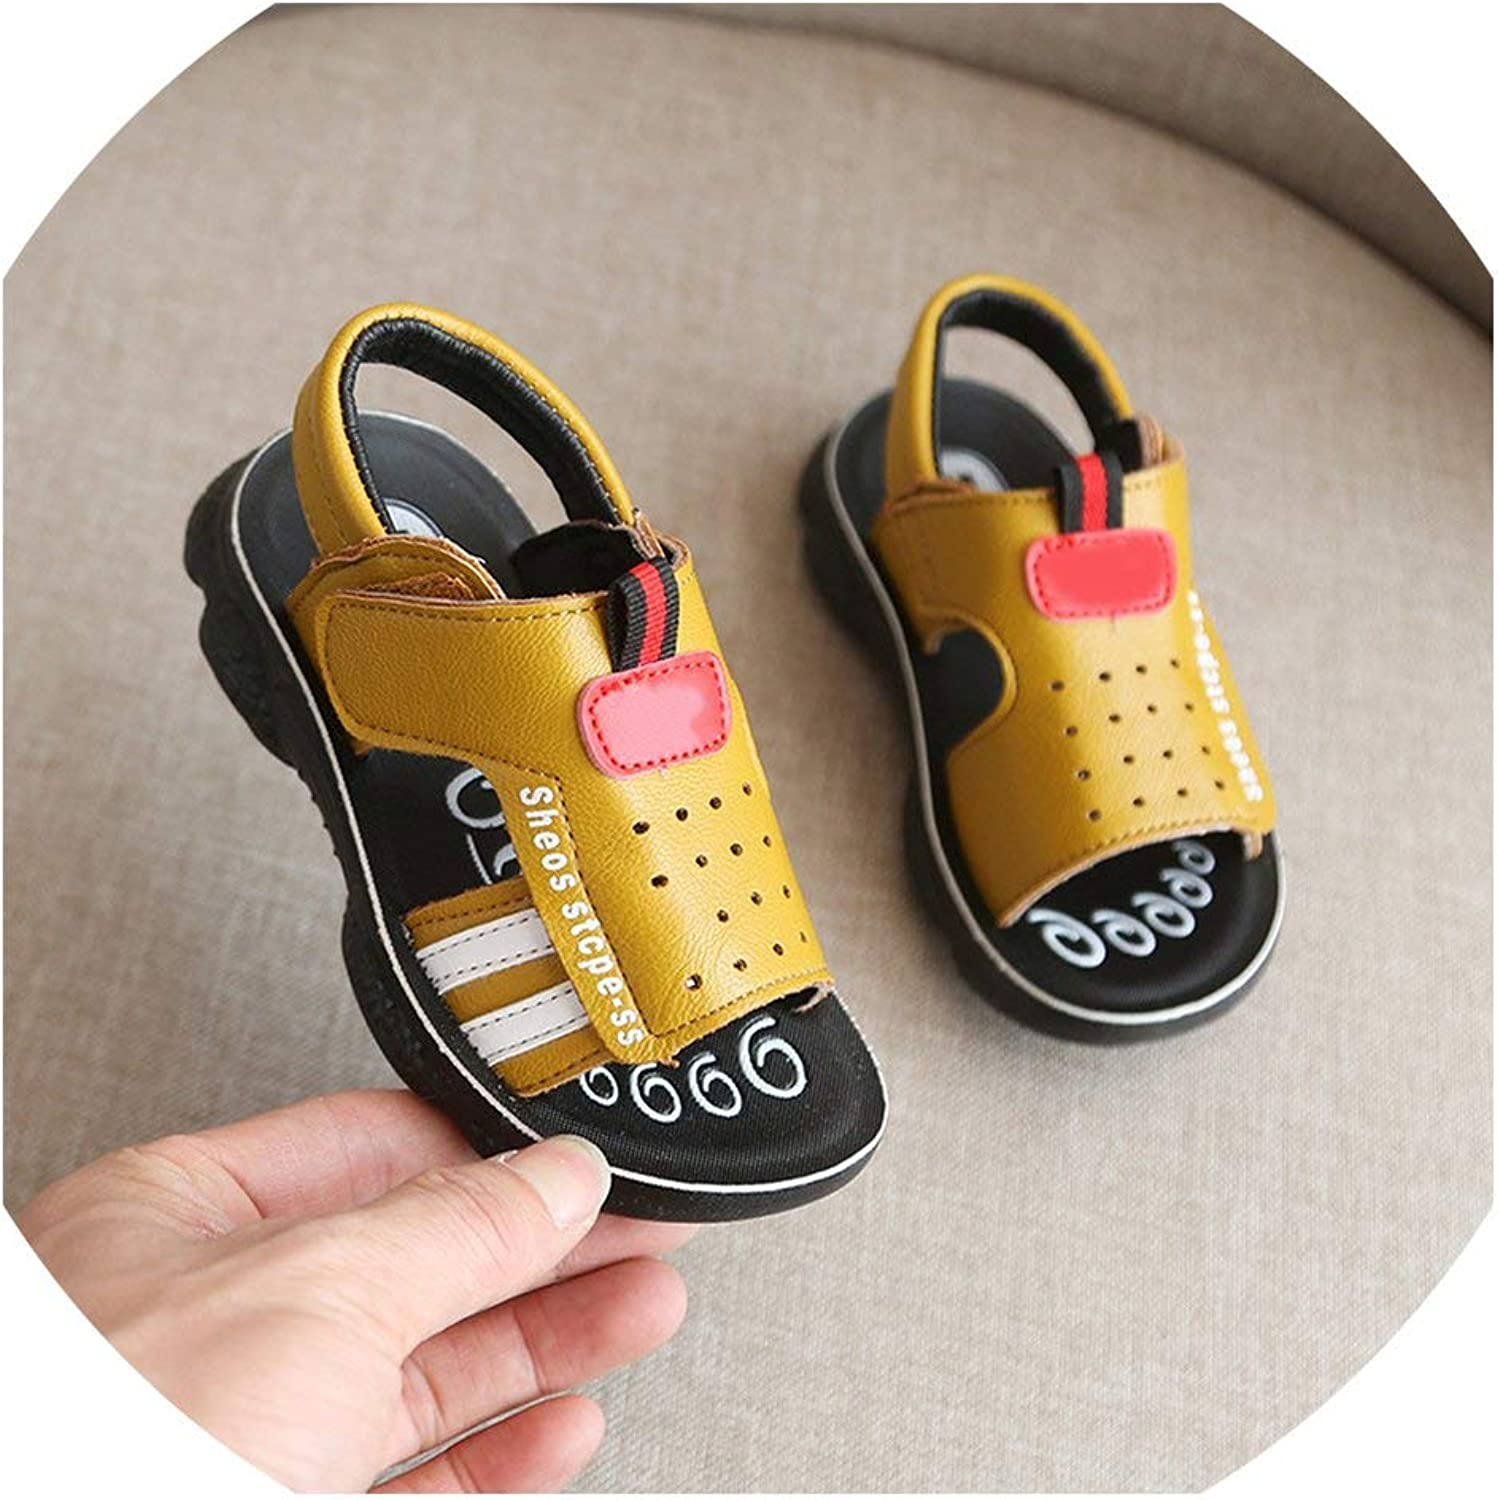 Boys Sandals Summer Toddler Kids Sandals Orthopedic Pu Leather Childrens Shoes for Boys Flat Size 21-31,Yellow,10.5